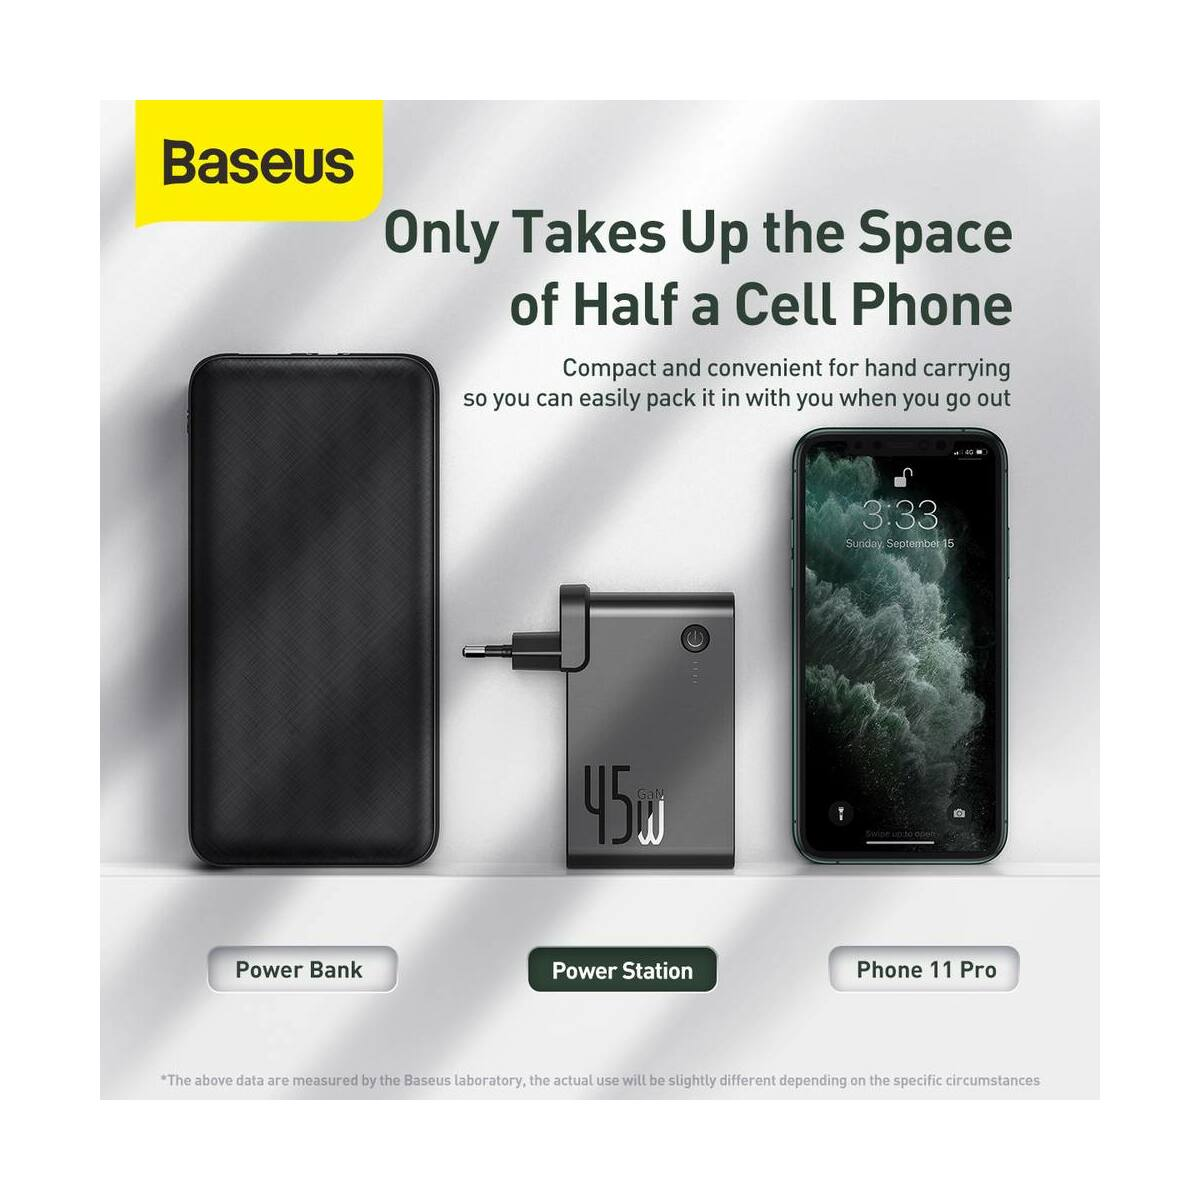 Baseus Power Station, 2-in-1 hálózati adapter és power bank, Type-C ki- és bemenet (Type-C kábel 60 W, 1m) 45W, 10000 mAh, fekete (PPNLD-F01